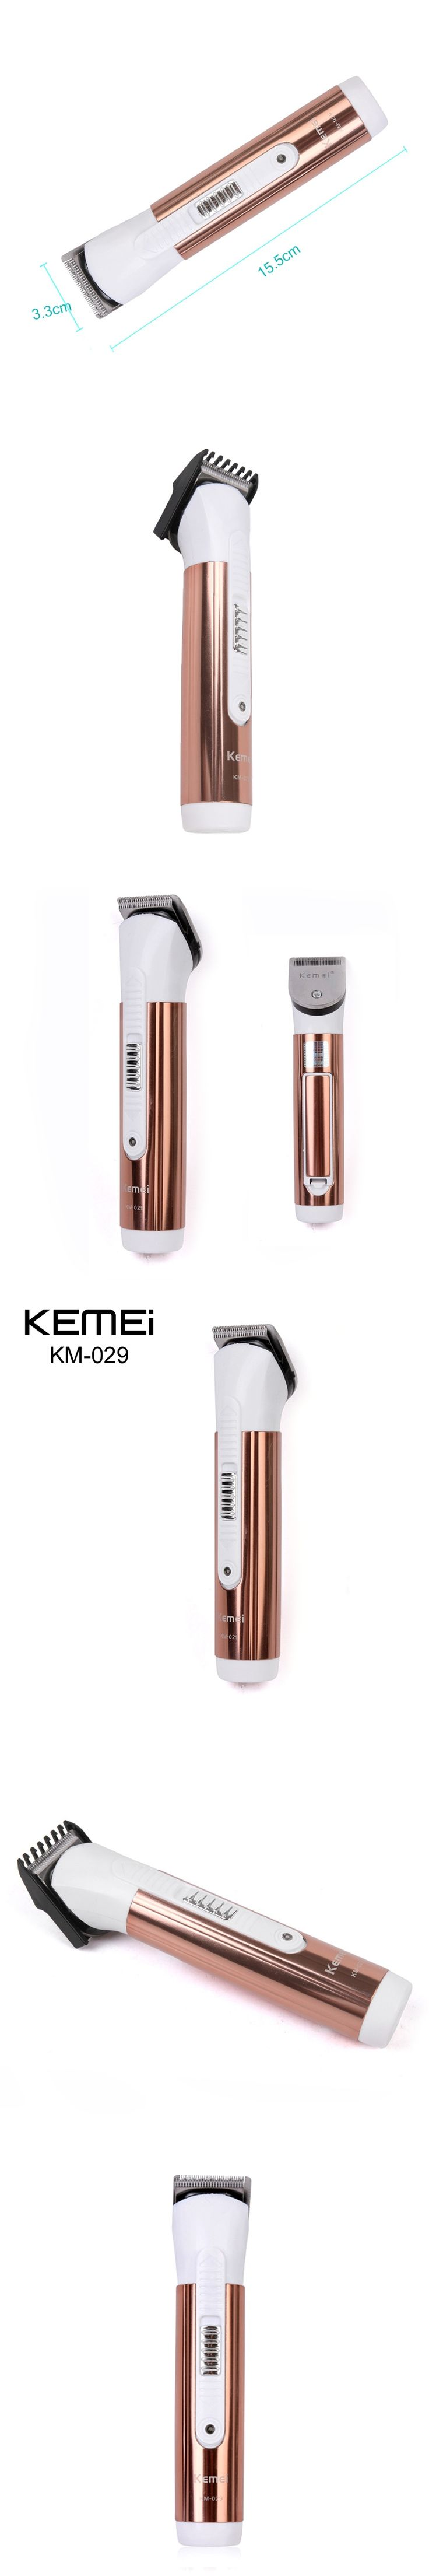 Electric Hair Clipper Trimmer with Limit Comb Adjustor Rechargeable Hair Shaver Razor Cordless Adjustable Clipper KM-029